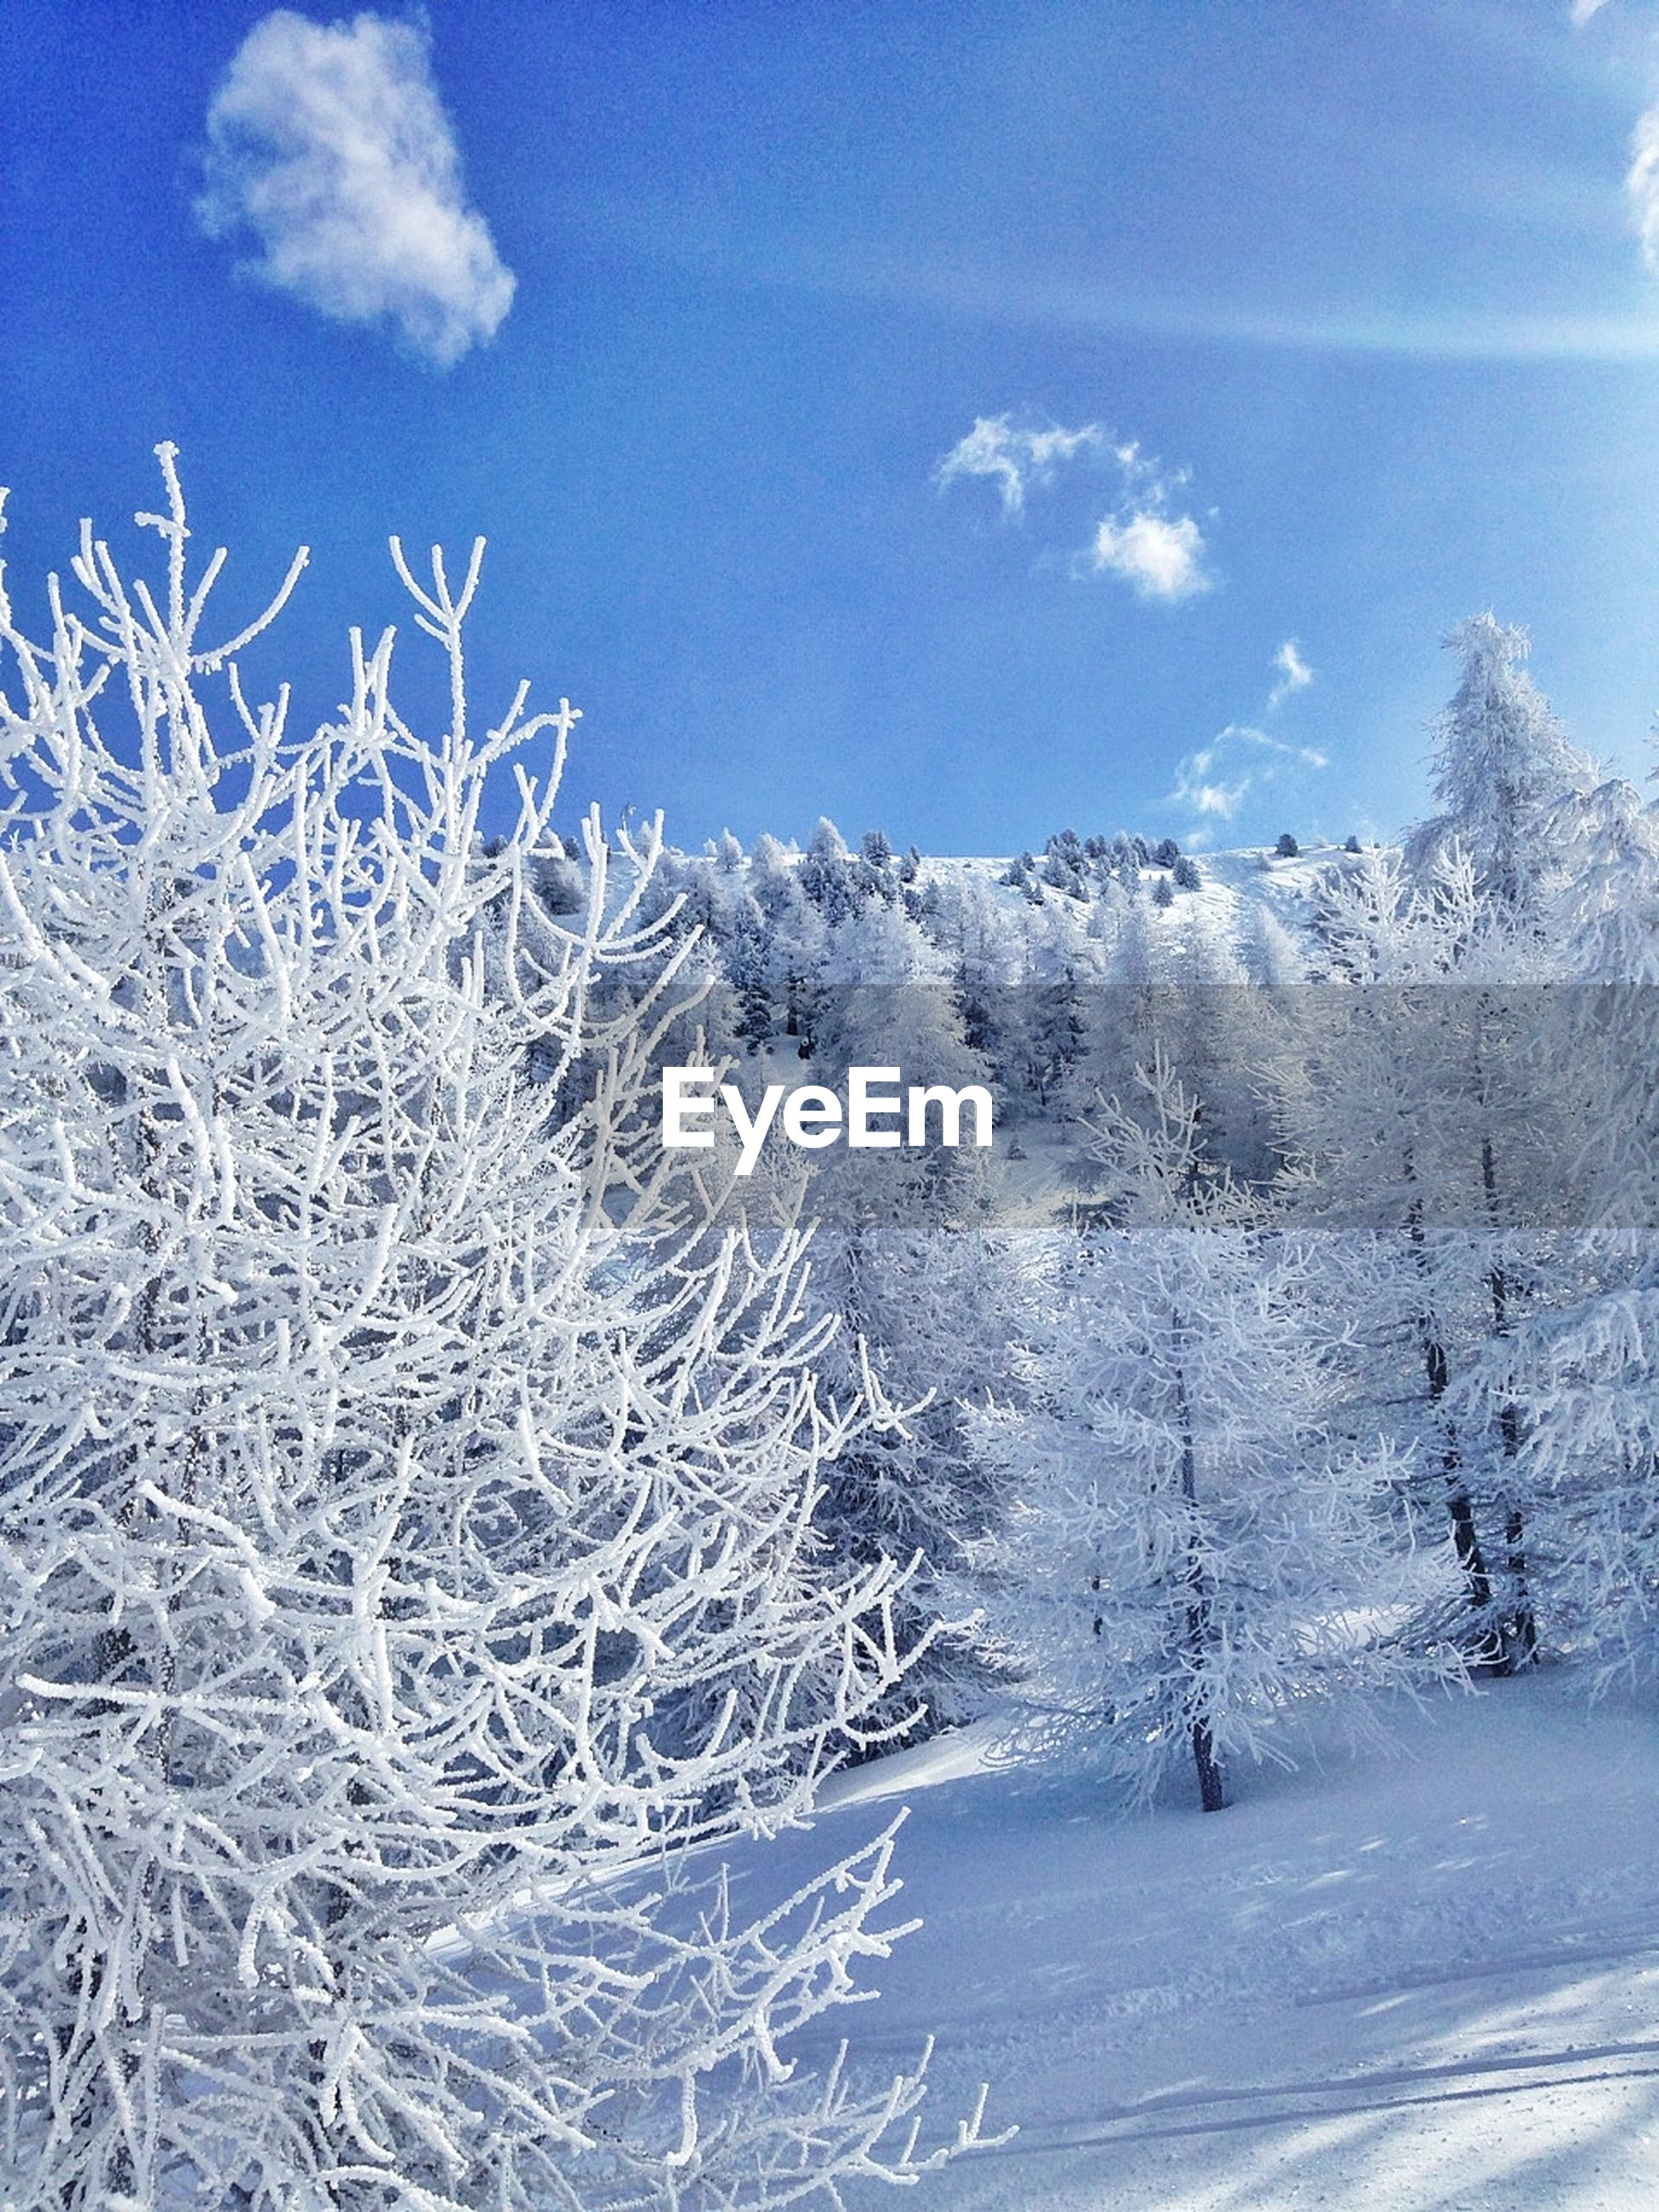 snow, winter, cold temperature, season, weather, covering, white color, sky, tranquility, nature, tranquil scene, frozen, landscape, field, beauty in nature, tree, bare tree, scenics, blue, covered